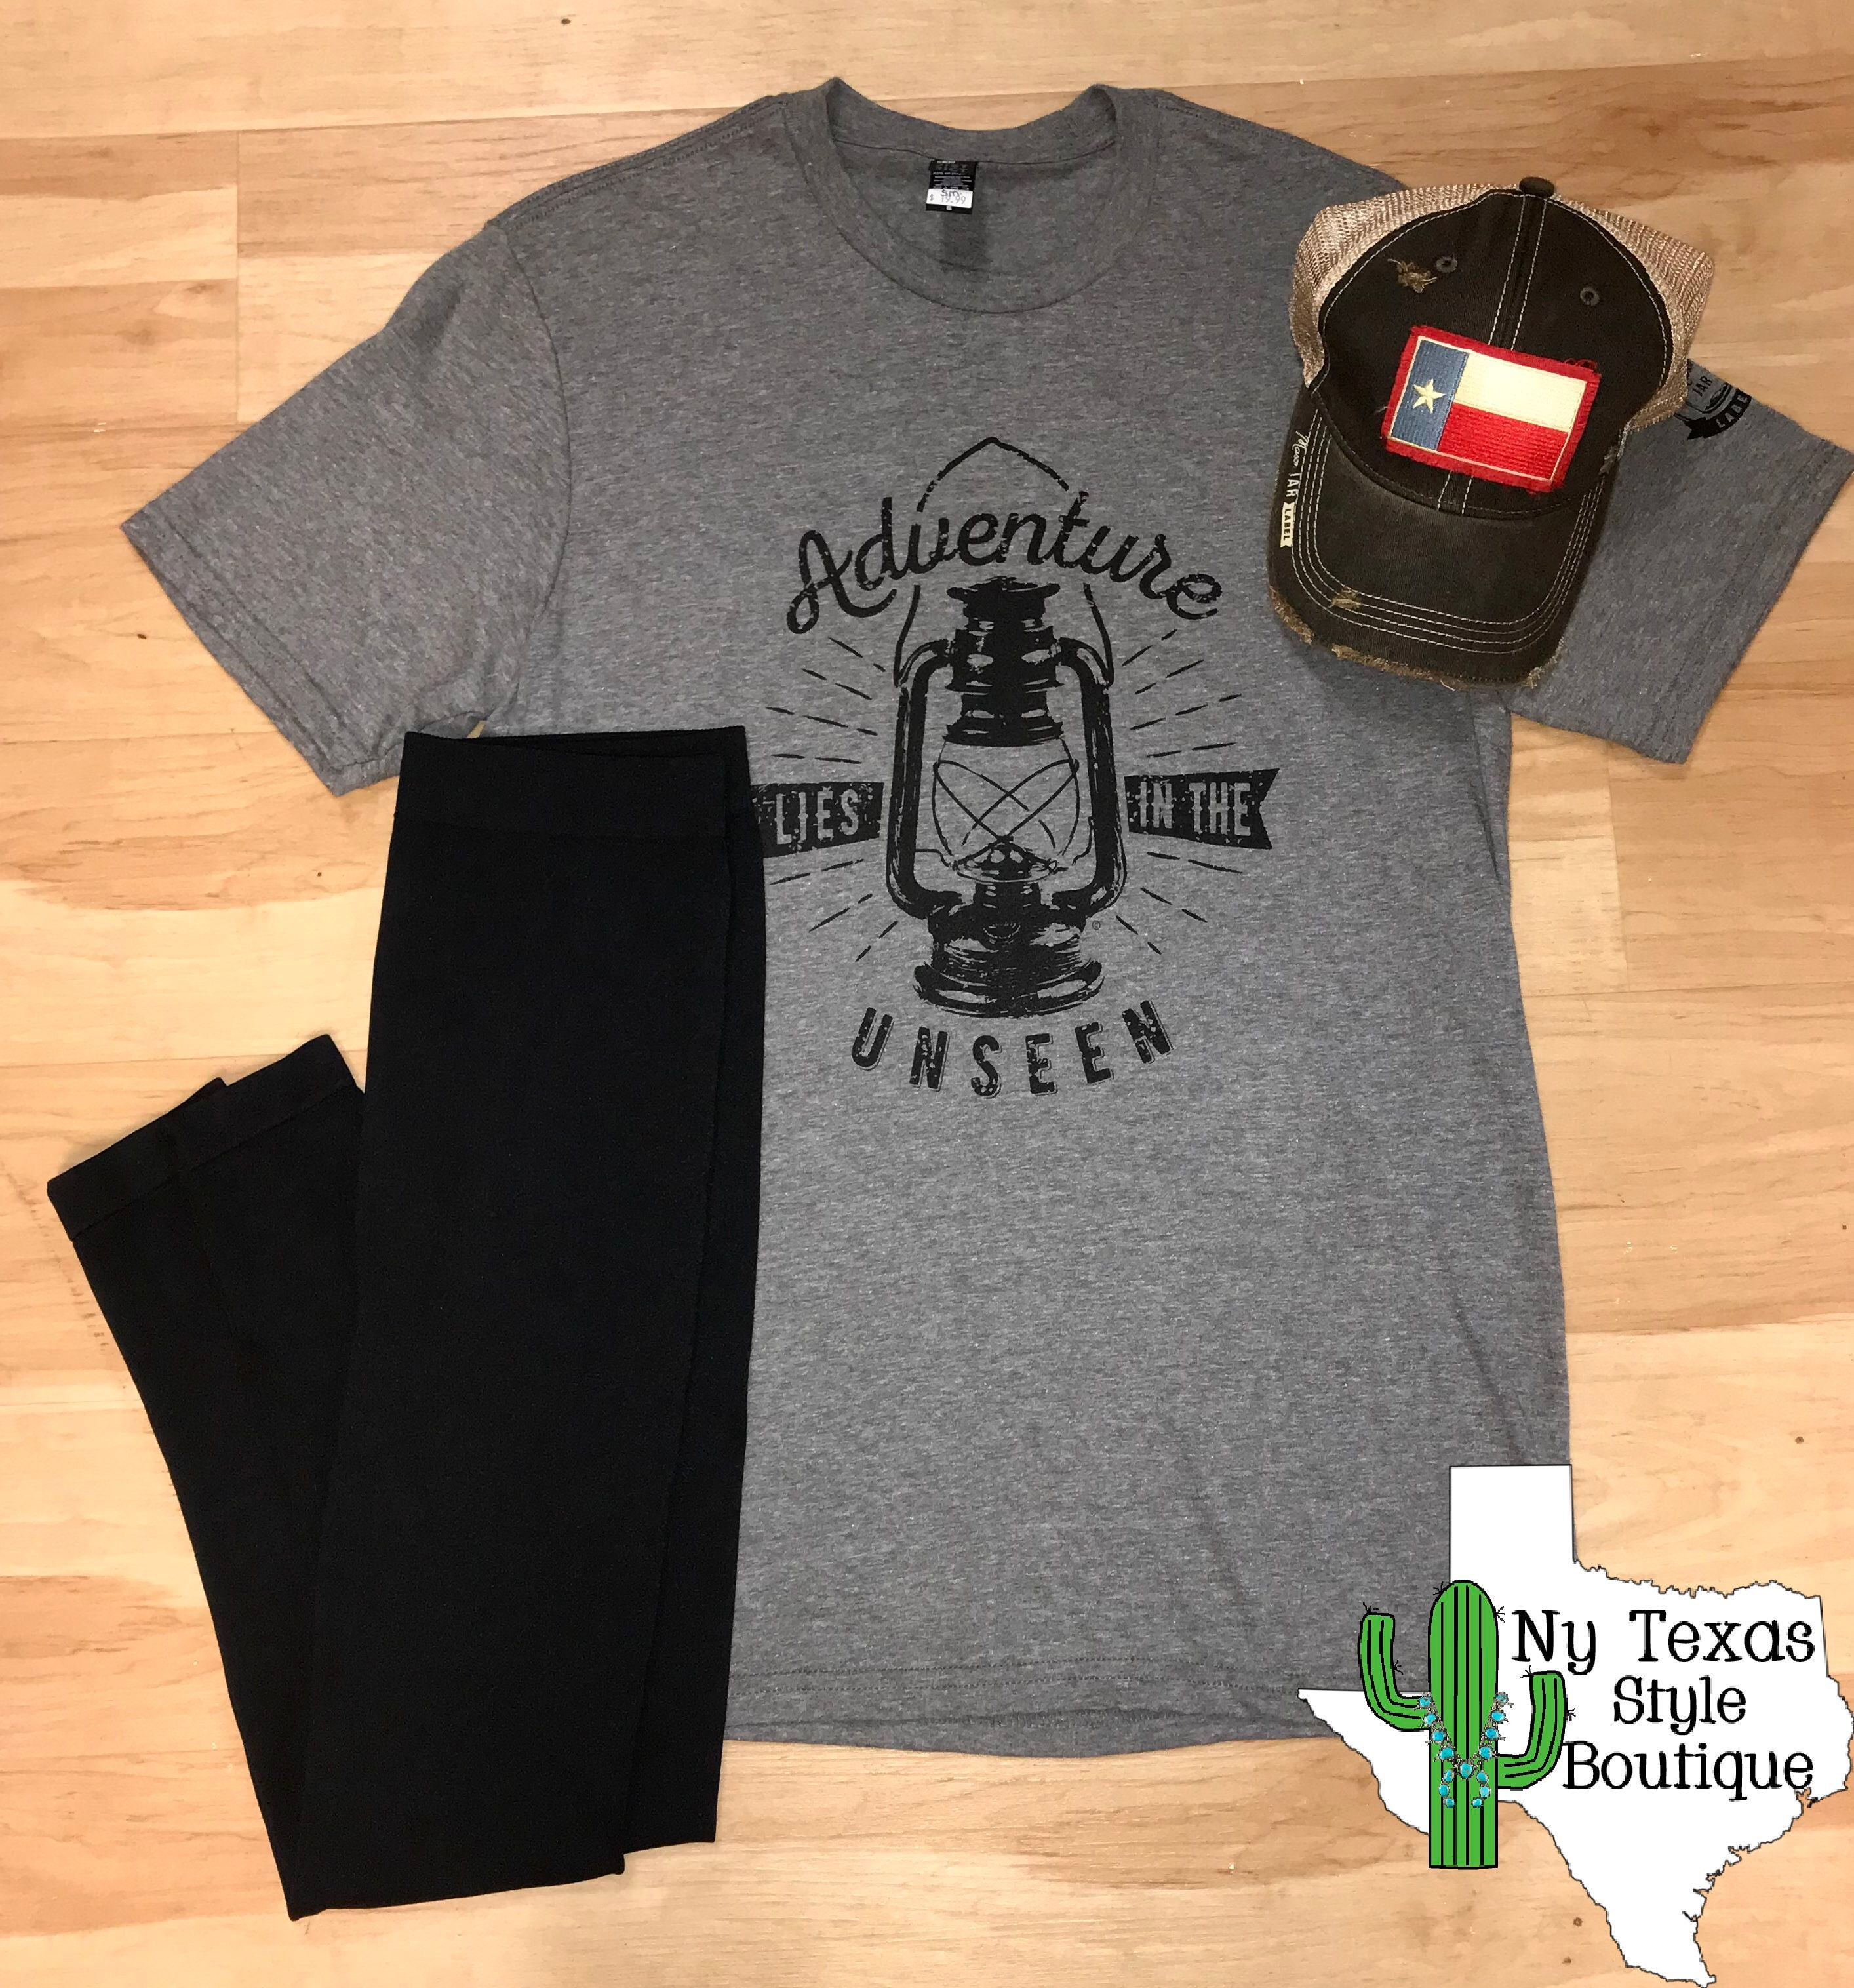 Adventure Lies In the Unseen tee - Ny Texas Style Boutique